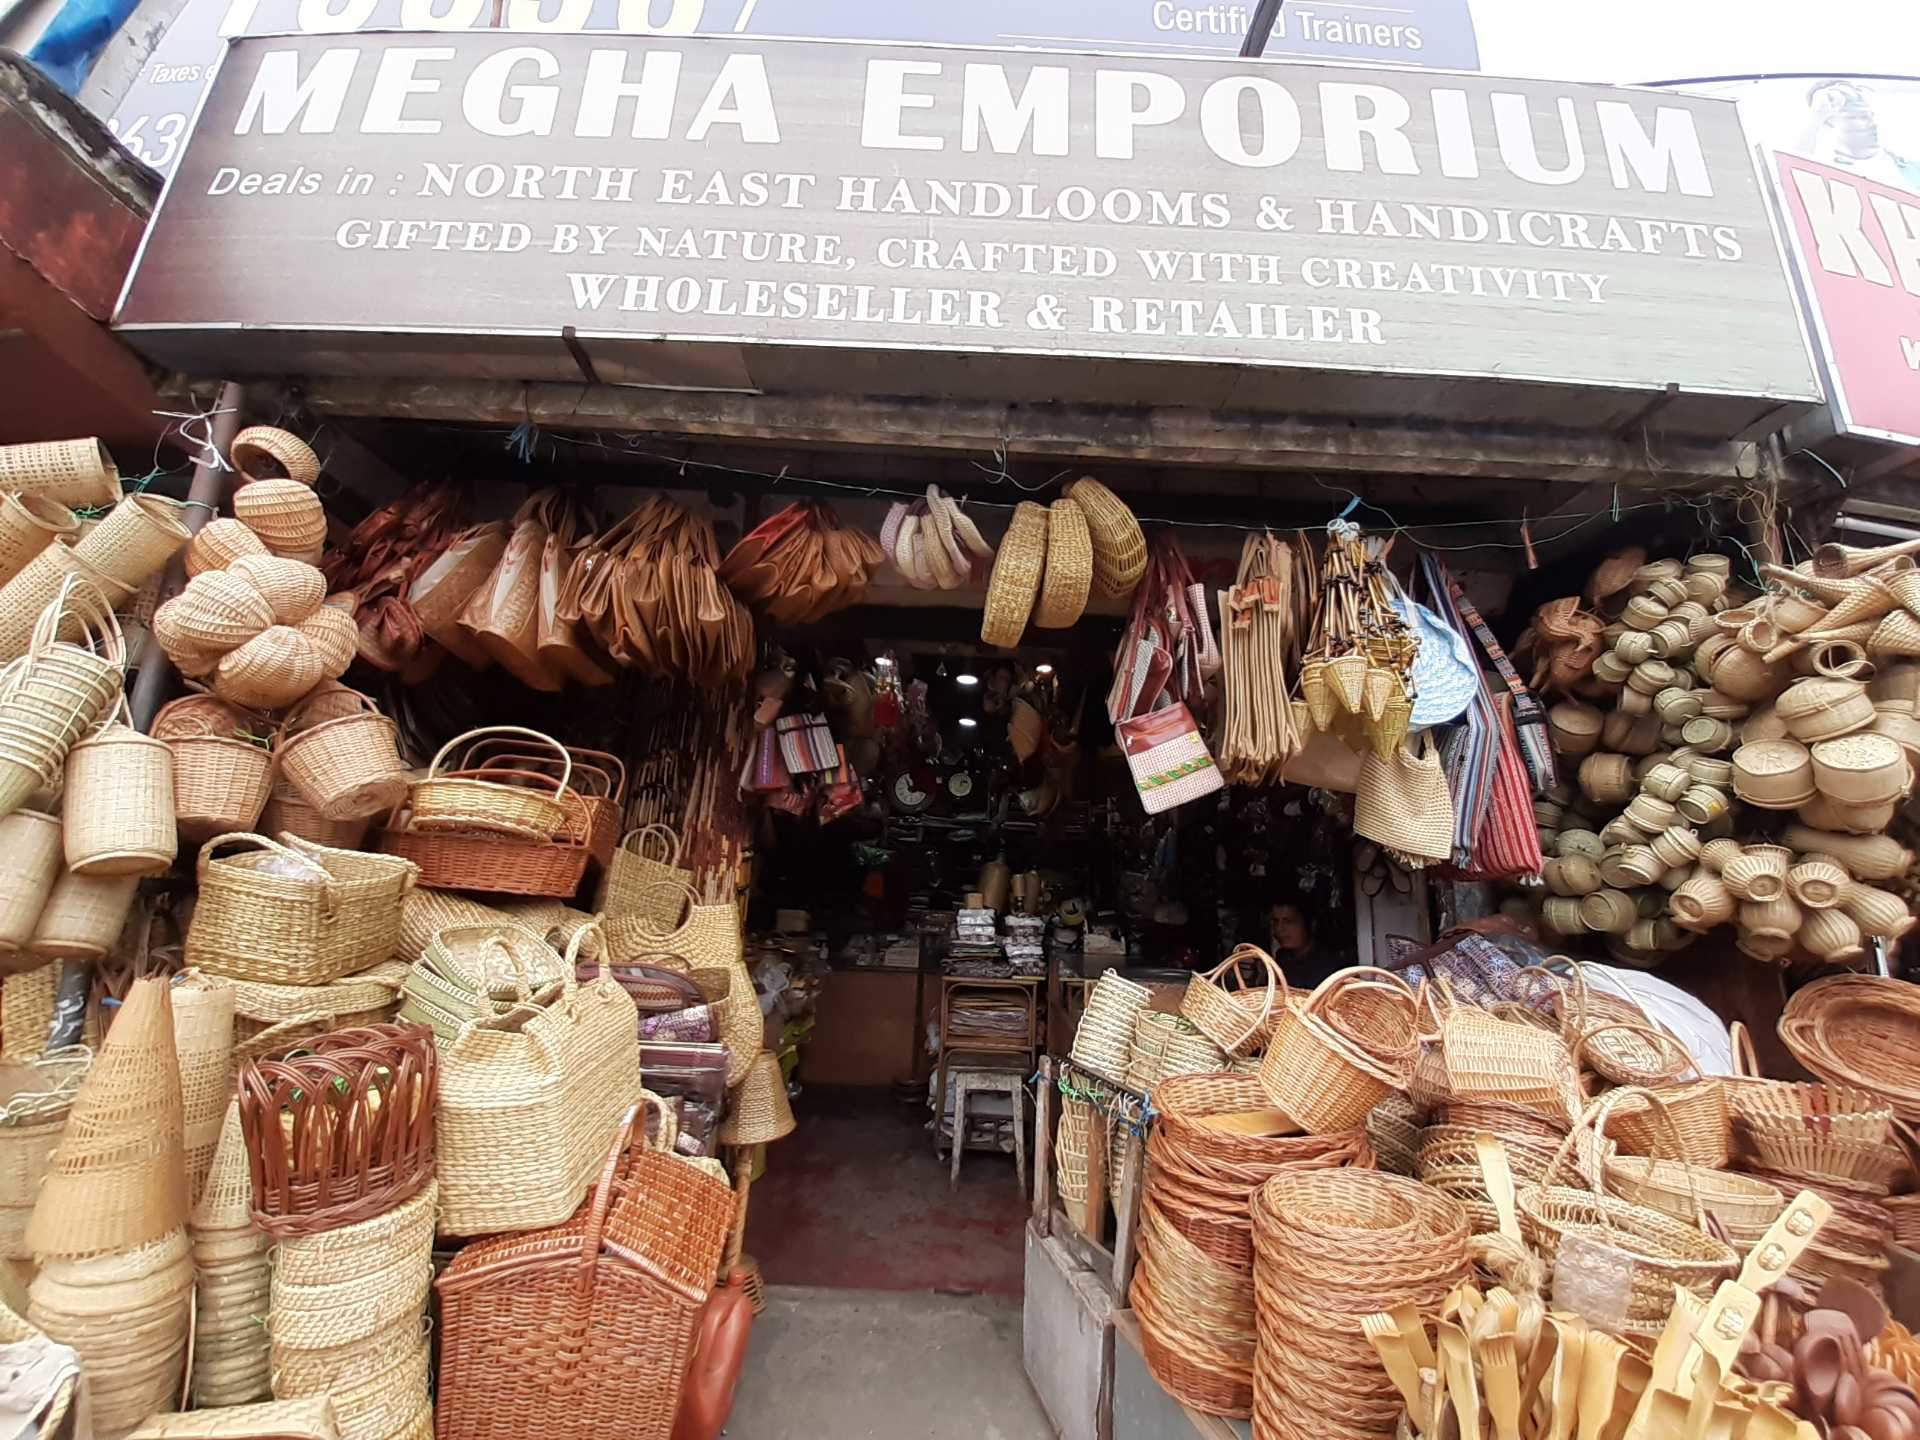 Meghalaya Handloom and Handicraft Development Emporium - Best Places To Shop In Shillong To Explore The City